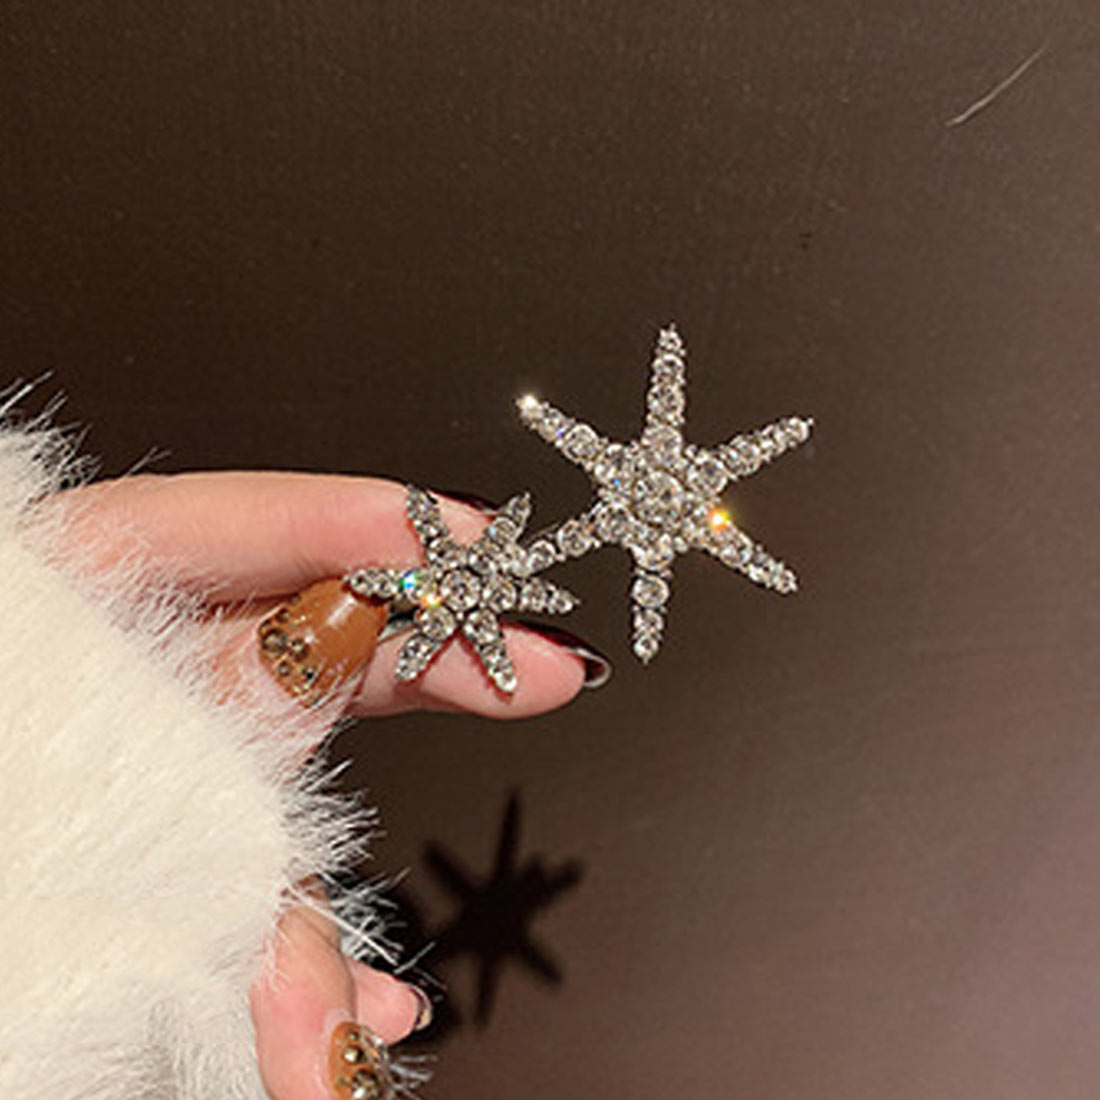 1 Pcs Fashion Crystal Rhinestones Five-pointed Stars Shape Women Hair Clips Barrettes Styling Accessories